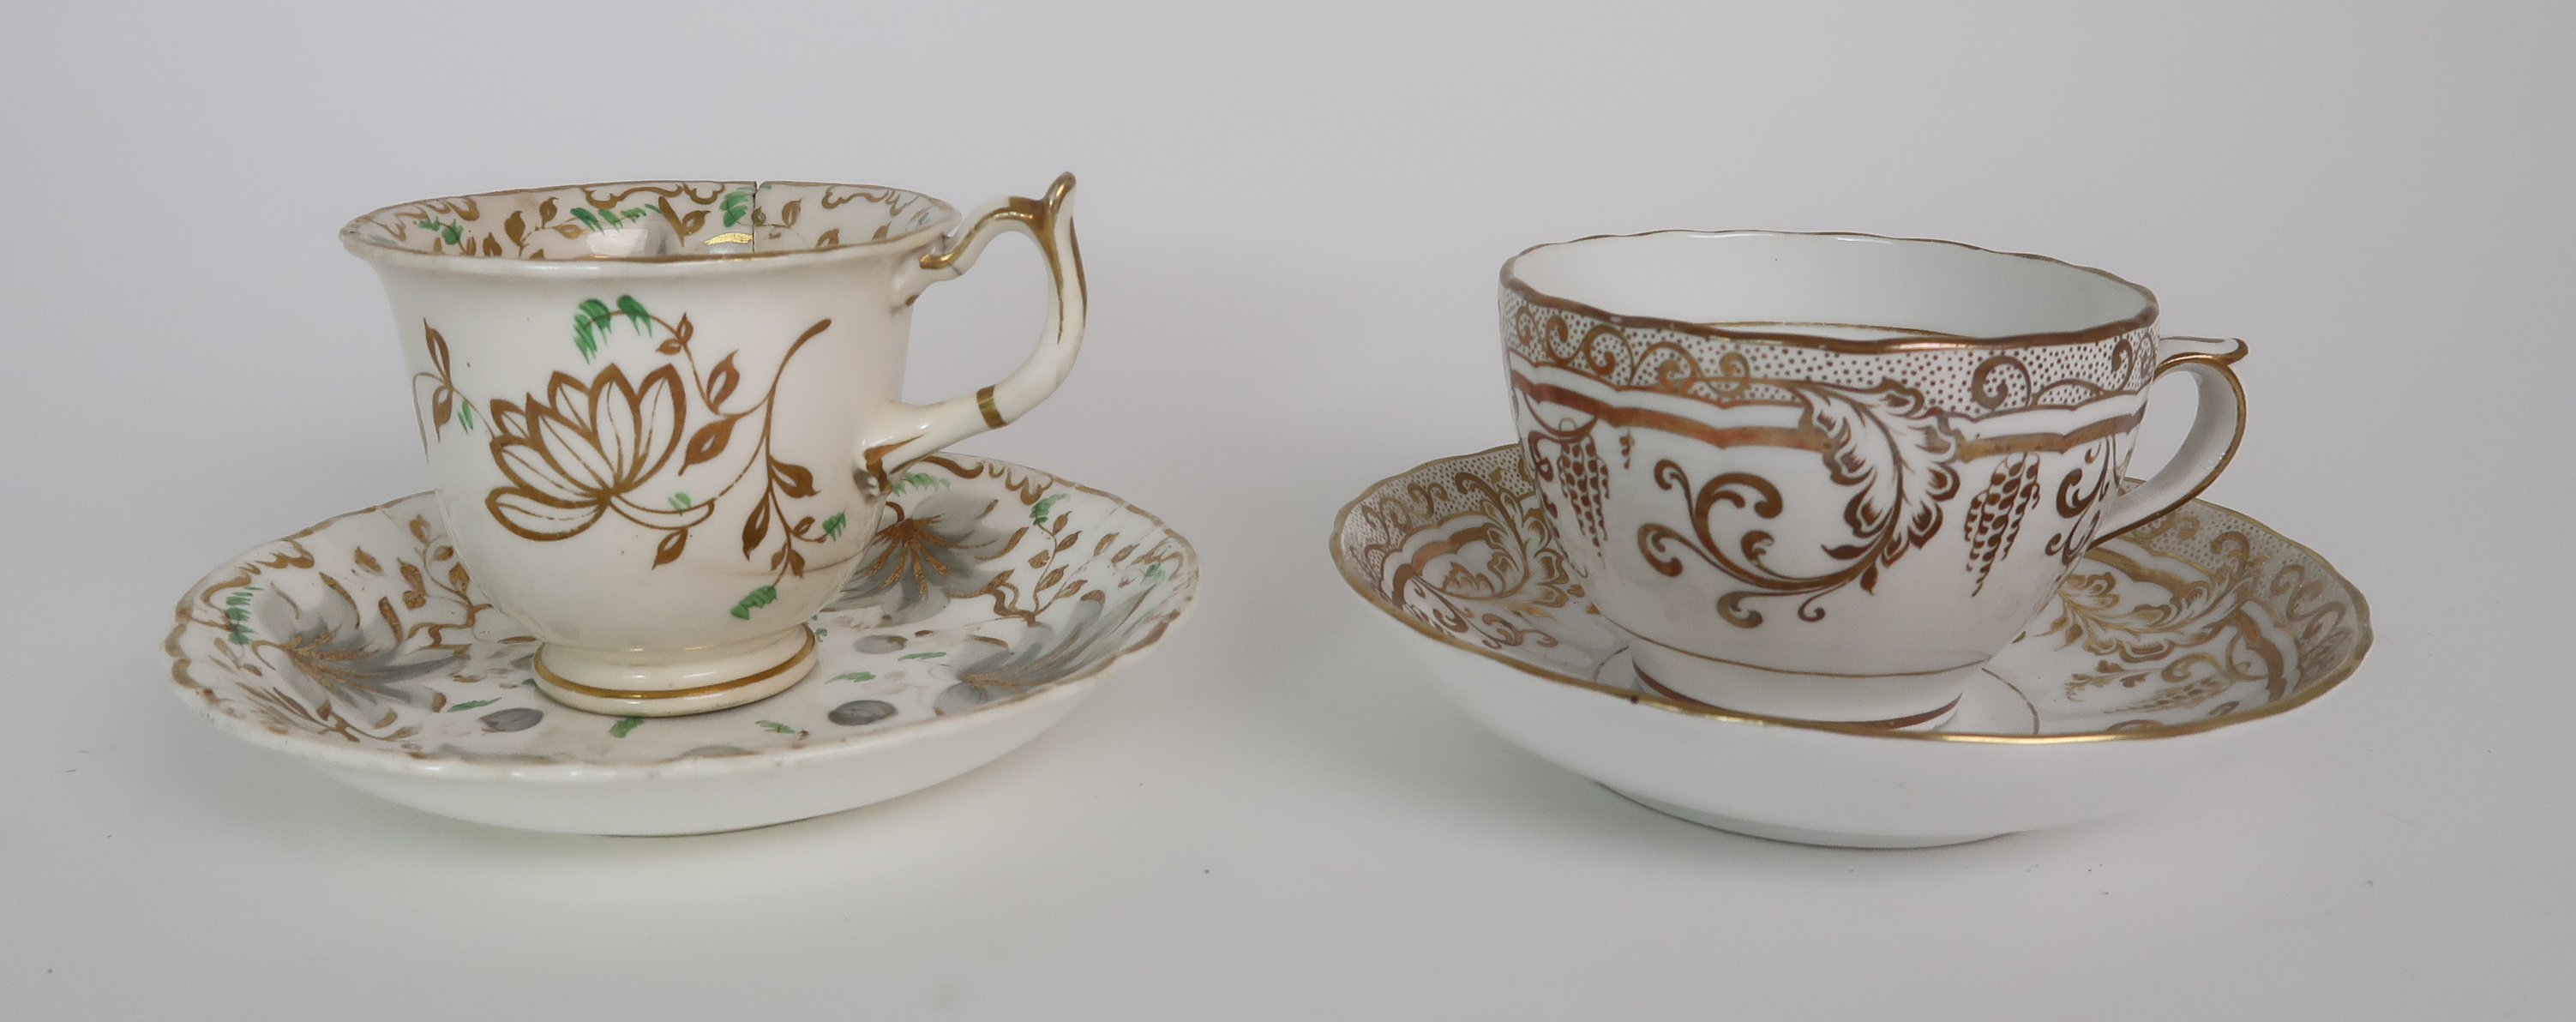 A COLLECTION OF 19TH CENTURY ENGLISH TEA AND COFFEE WARES the white ground with either grey and gilt - Image 12 of 22